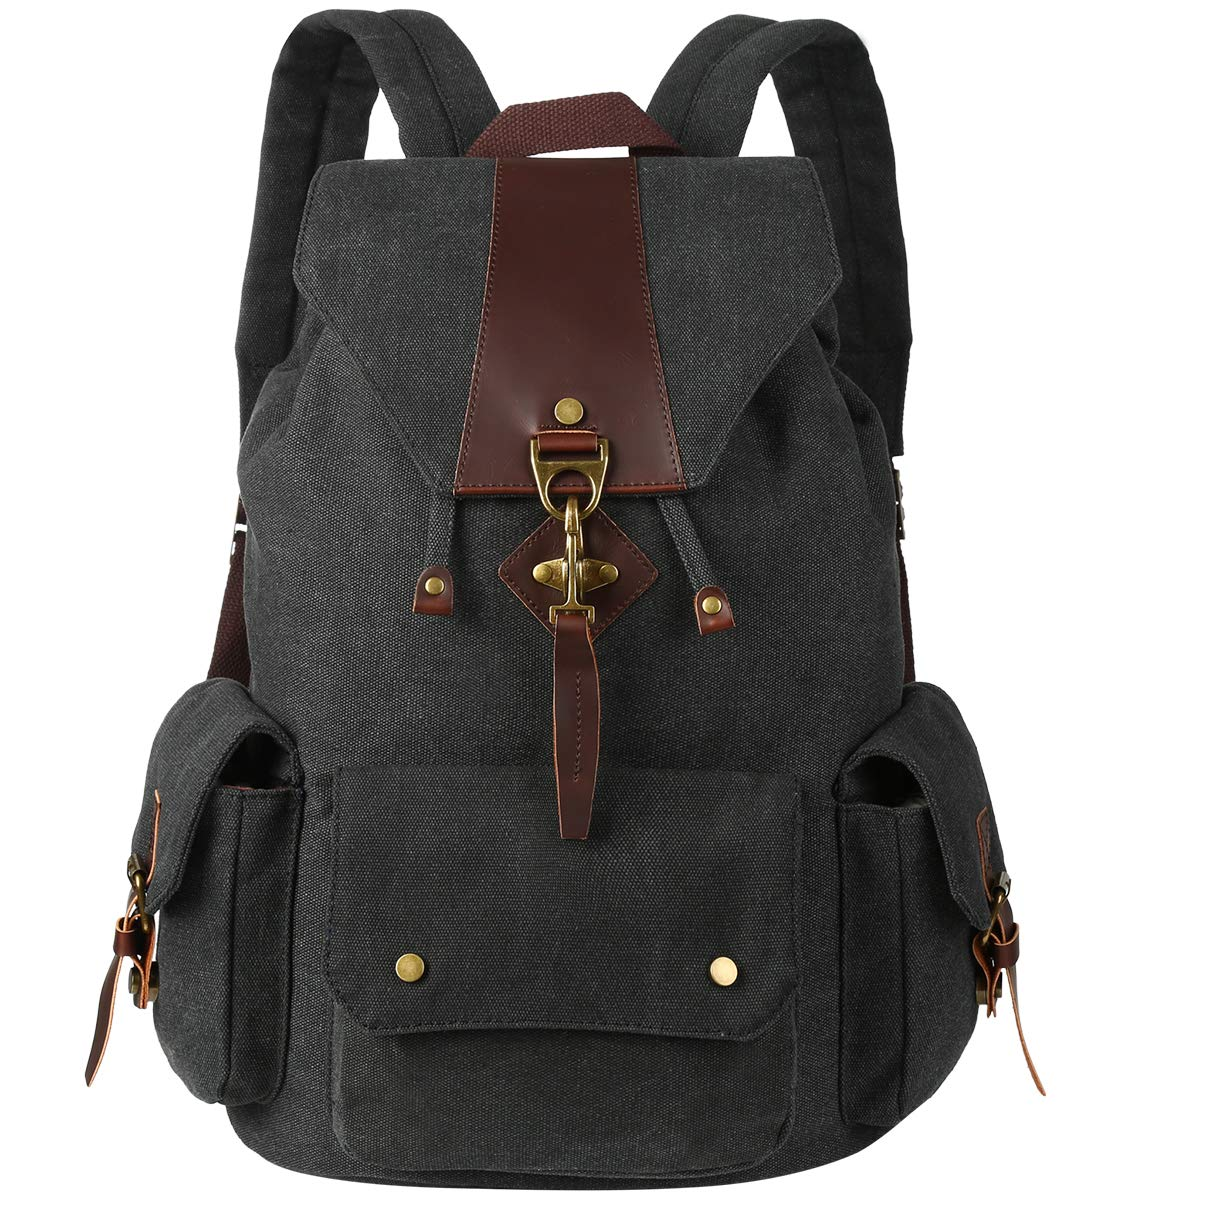 VBG VBIGER Canvas Backpack Vintage Canvas Leather Backpack Casual Bookbag Laptop Backpacks Travel